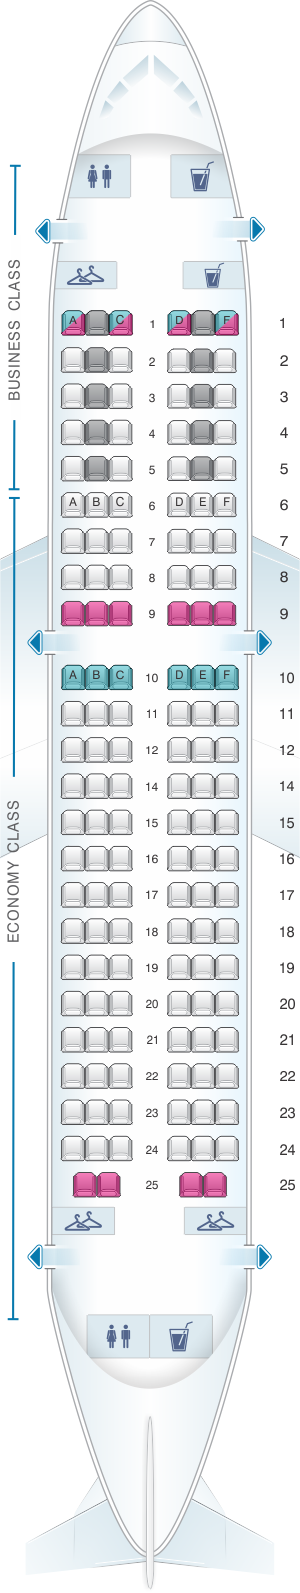 Seat map for Air France Airbus A319 Europe V1